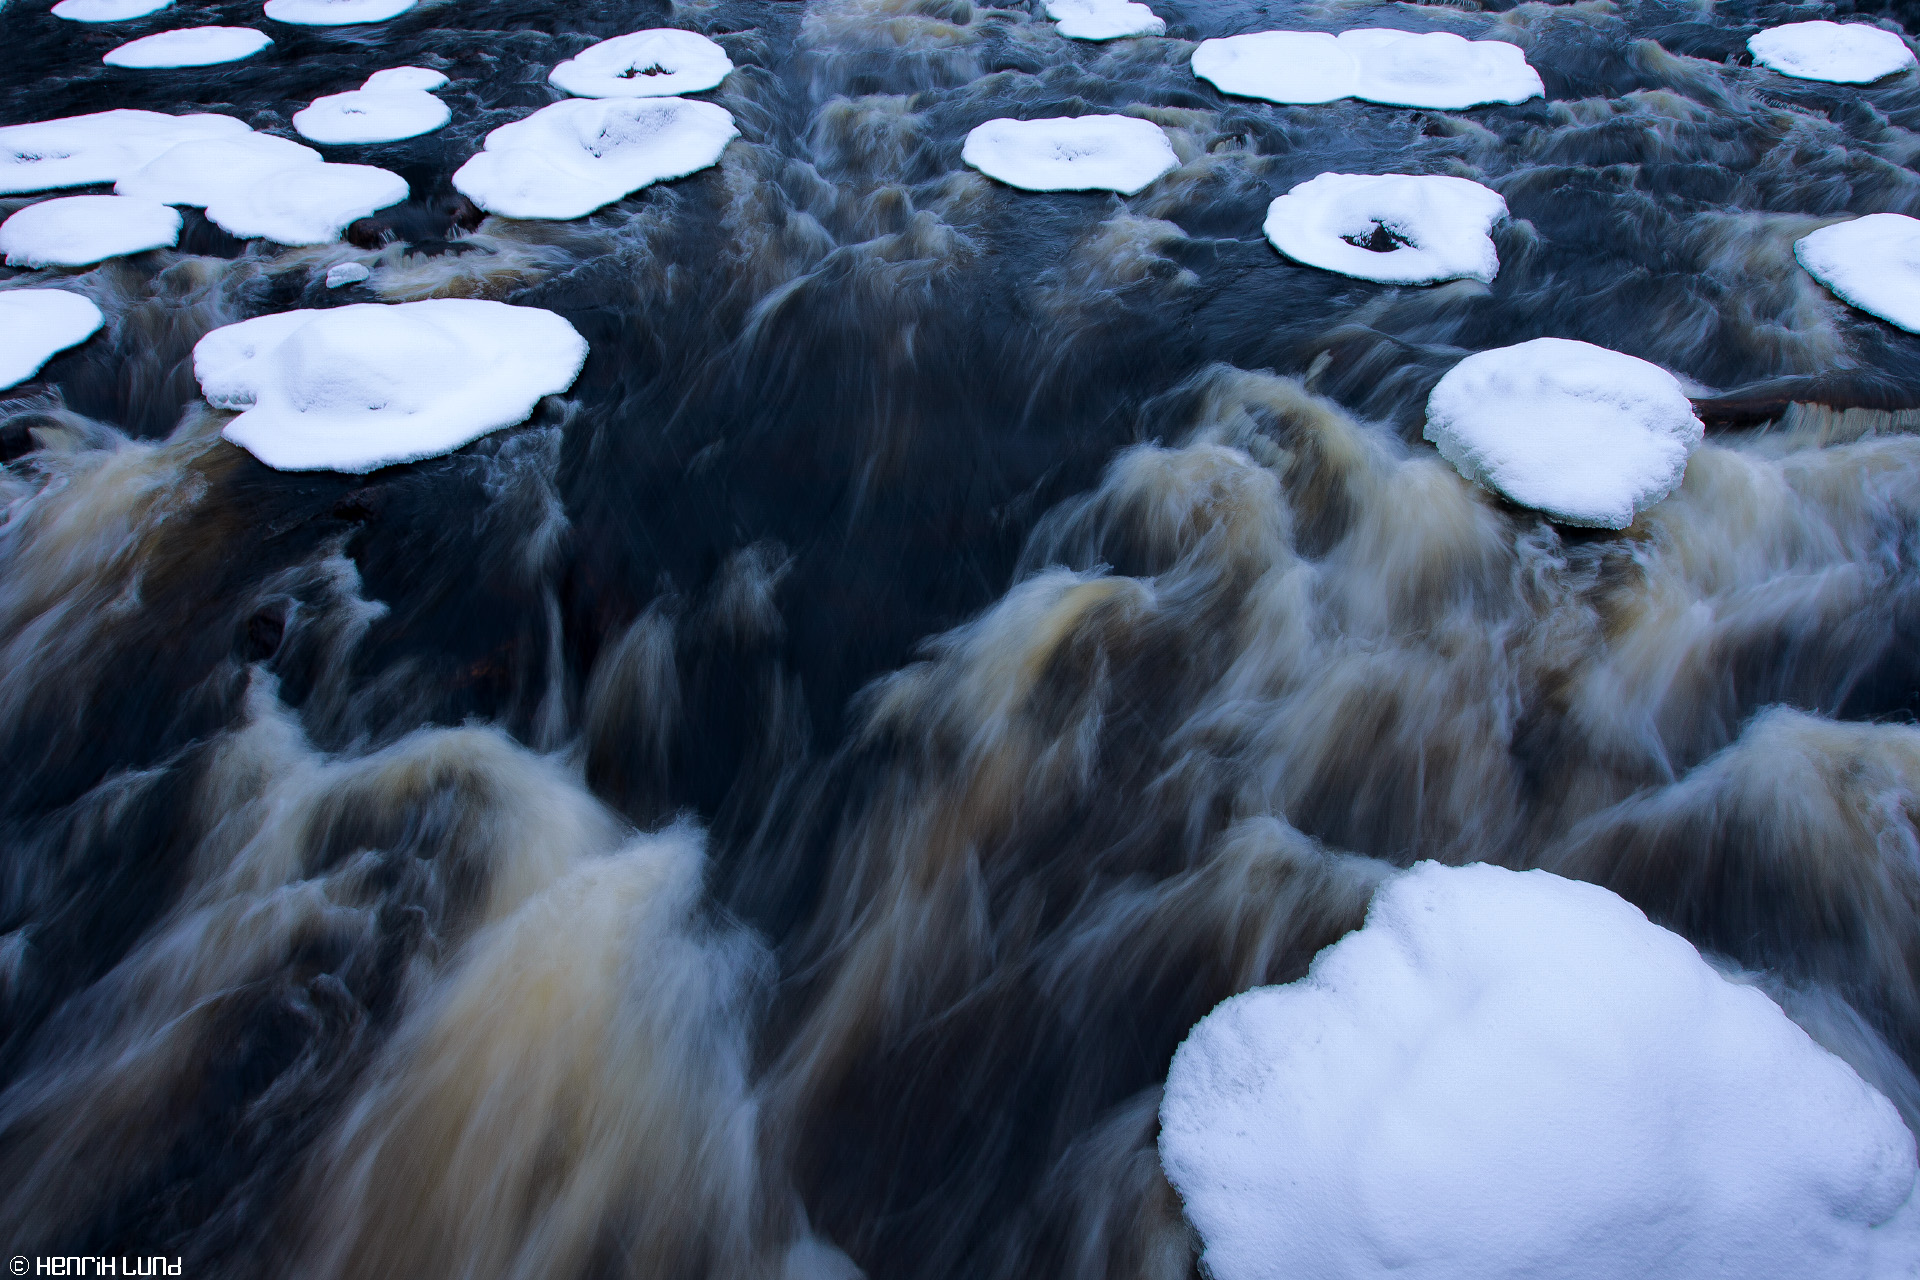 Myllykoski rapids in Valkeala, Kouvola. December 2014.